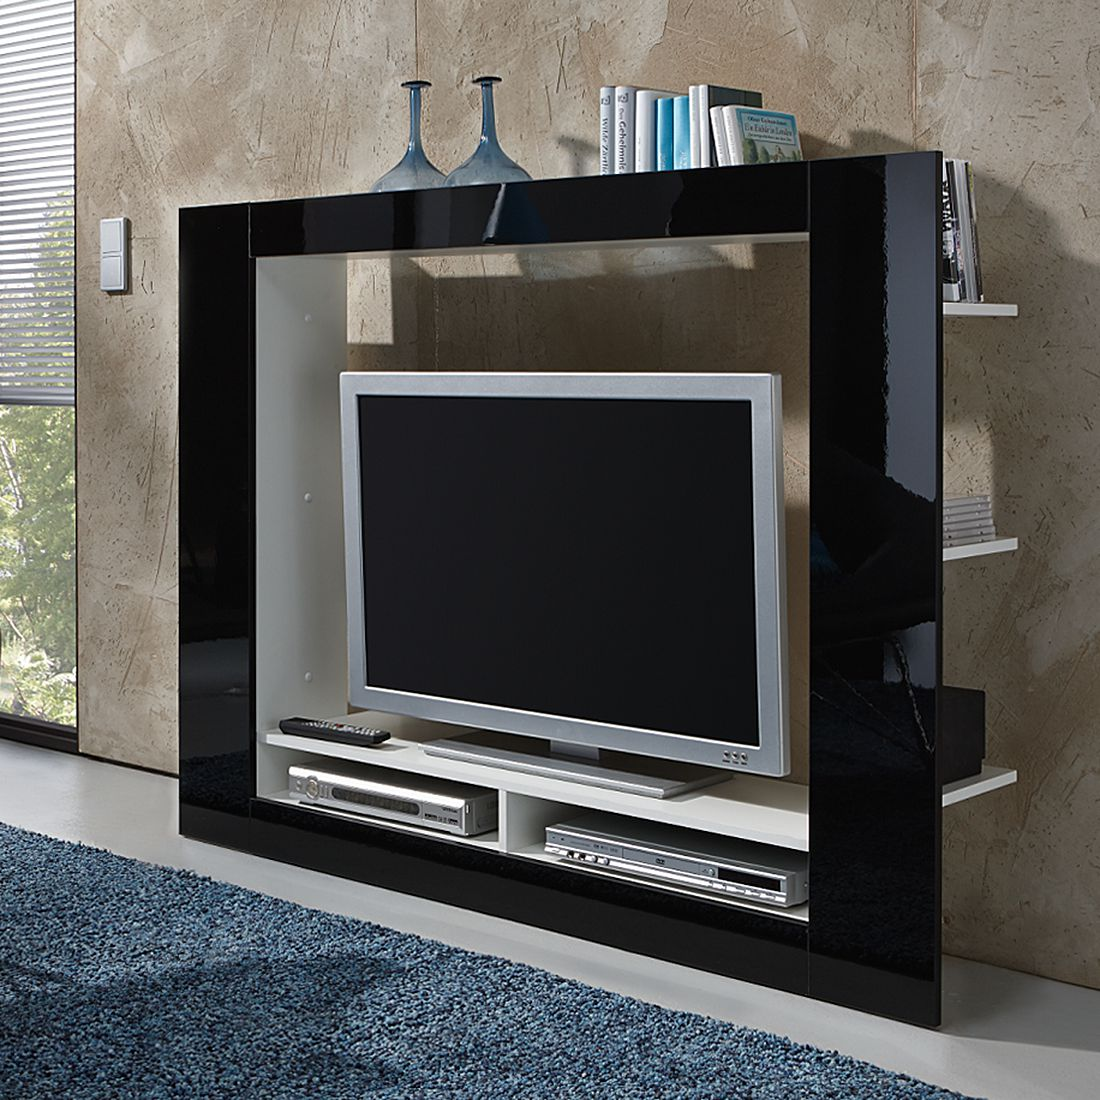 tv medienwand cinema hochglanz schwarz wei roomscape bestellen. Black Bedroom Furniture Sets. Home Design Ideas